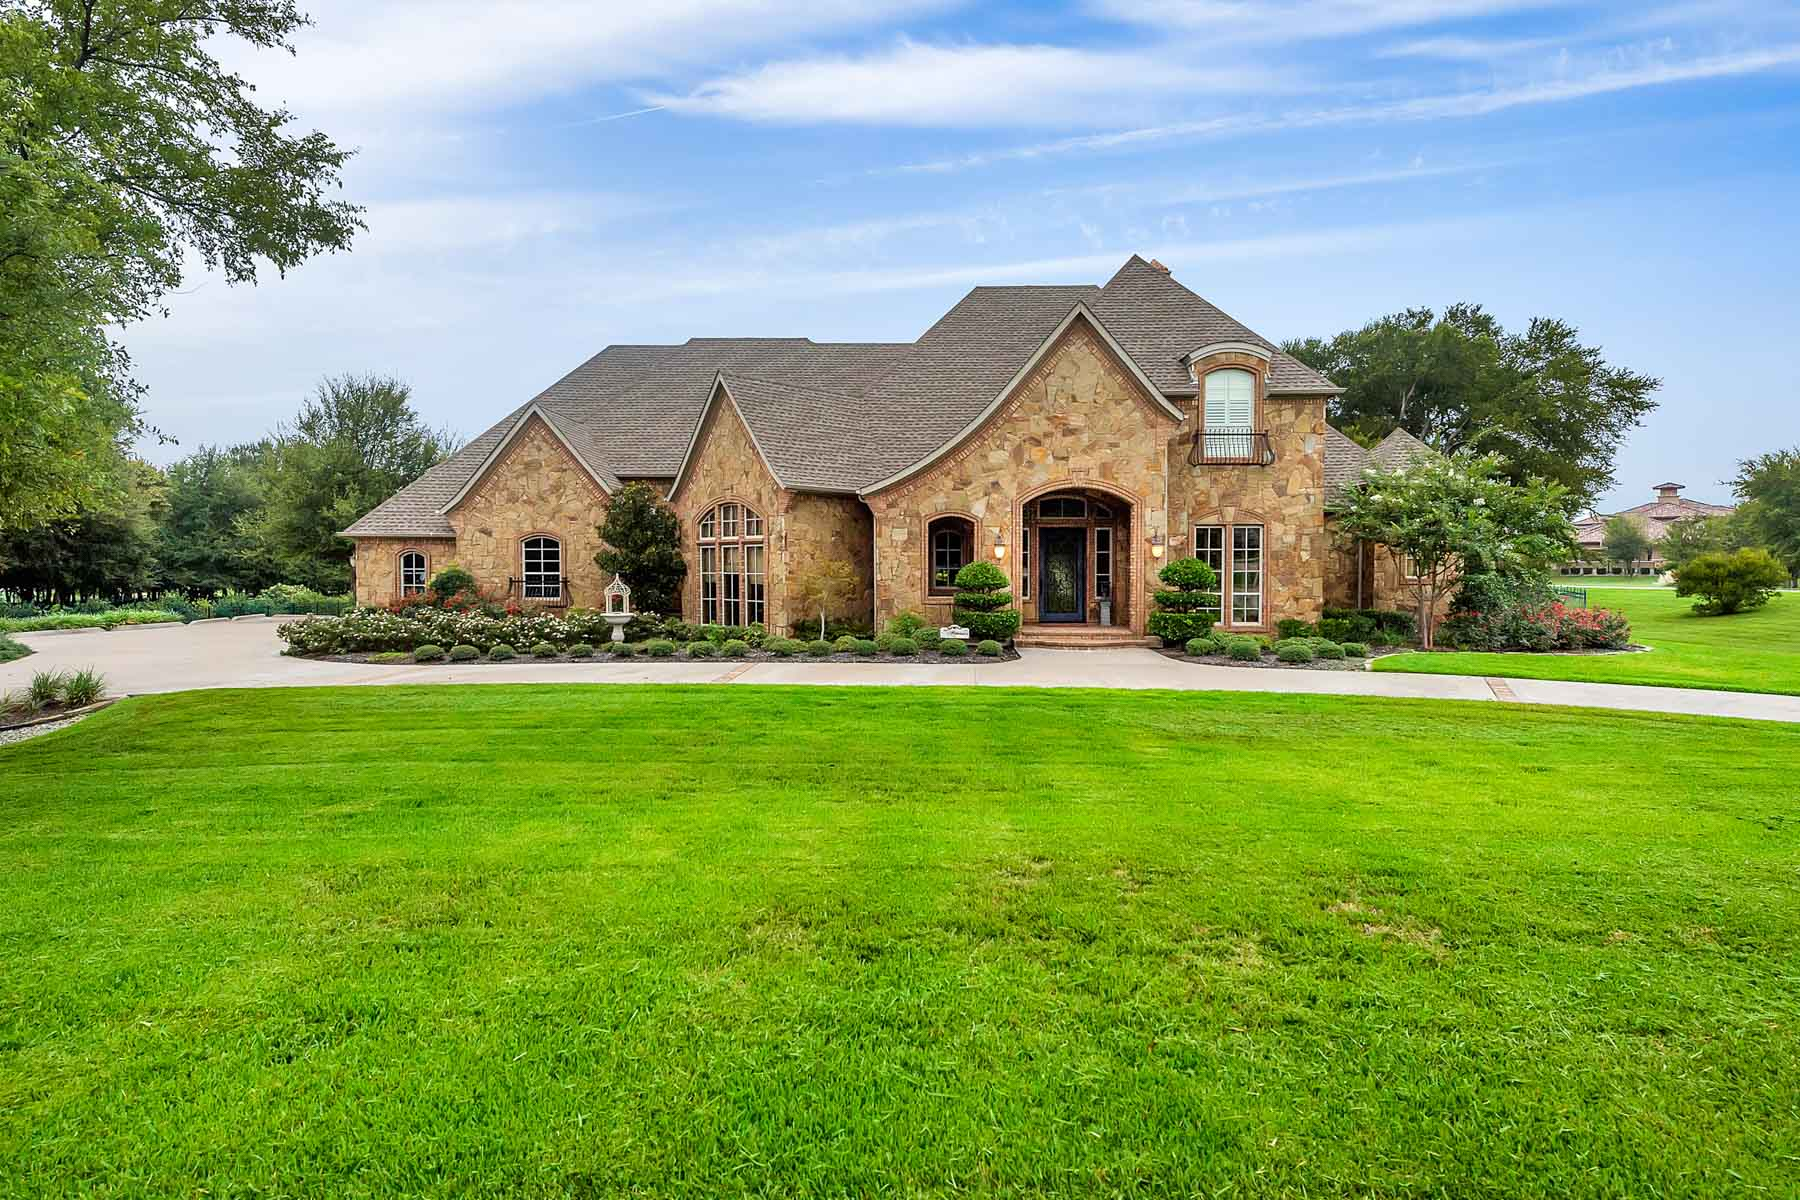 Single Family Home for Sale at Bella Flora Traditional 8100 Modena Drive Fort Worth, Texas, 76126 United States